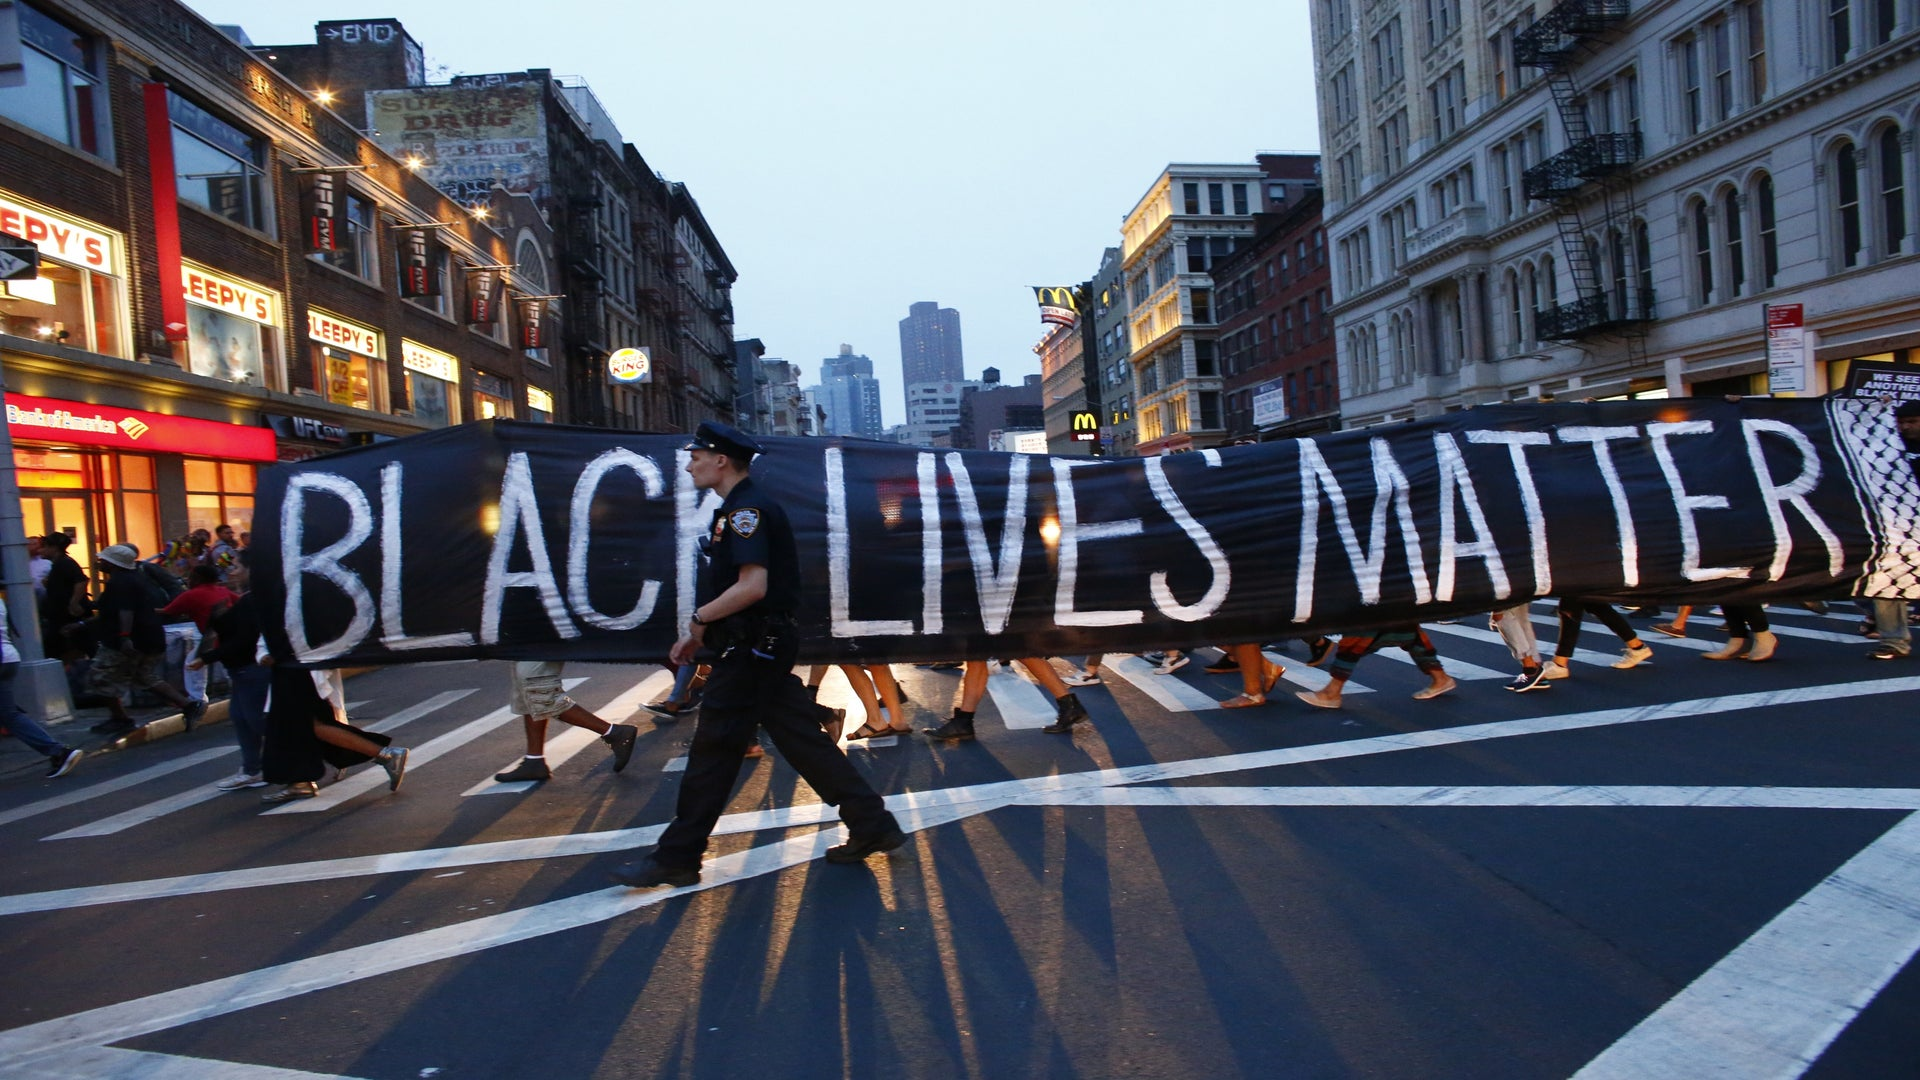 Documents Show FBI Monitored Black Lives Matter As 'Black Supremacist Extremists'